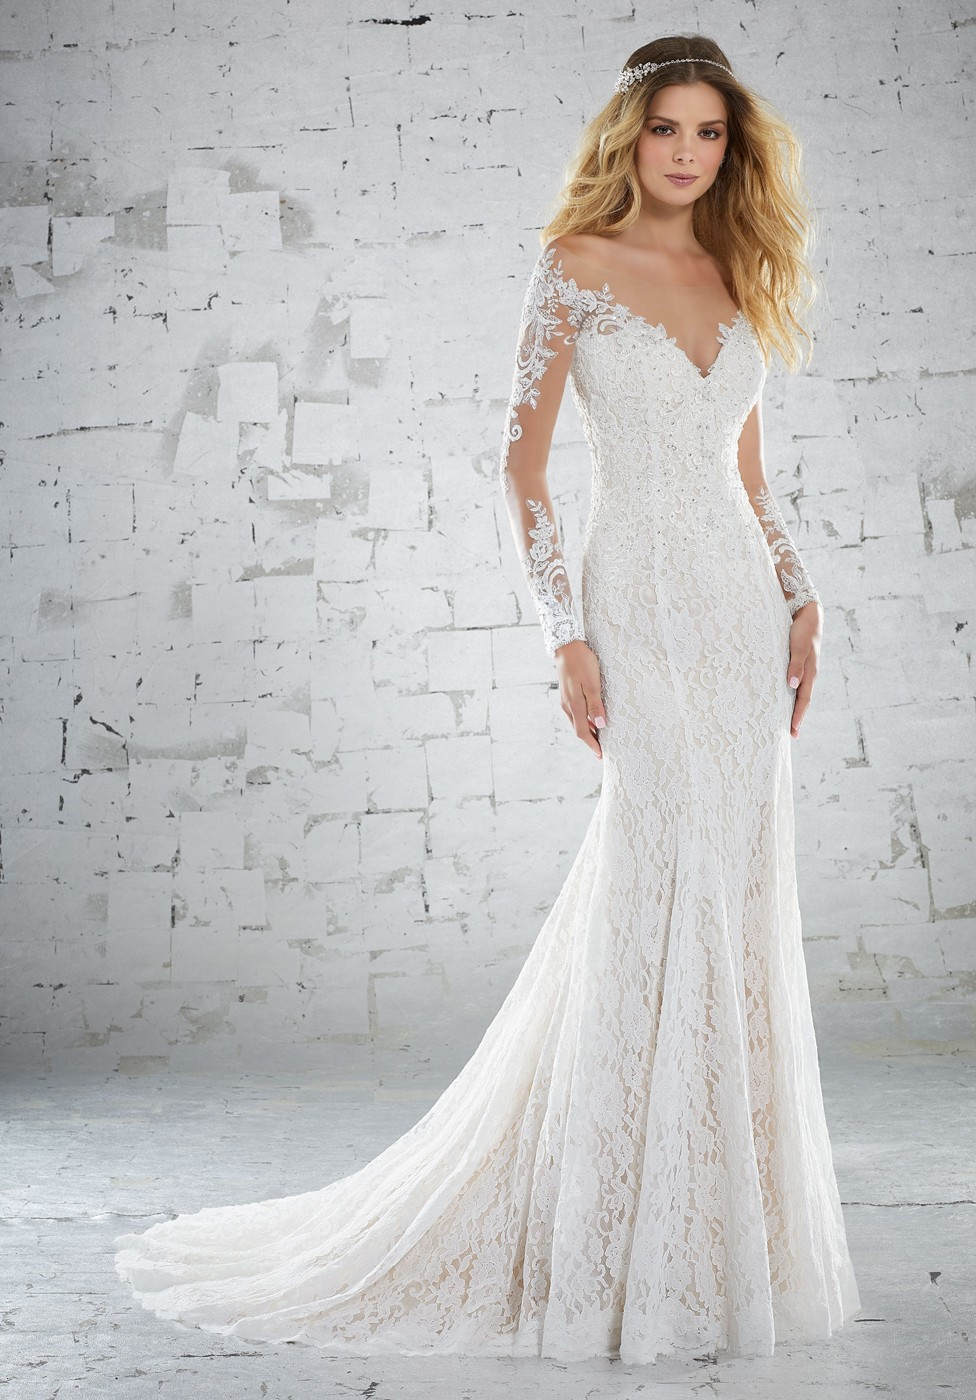 Mori Lee Karolina Style 6888 Dress - MadameBridal.com